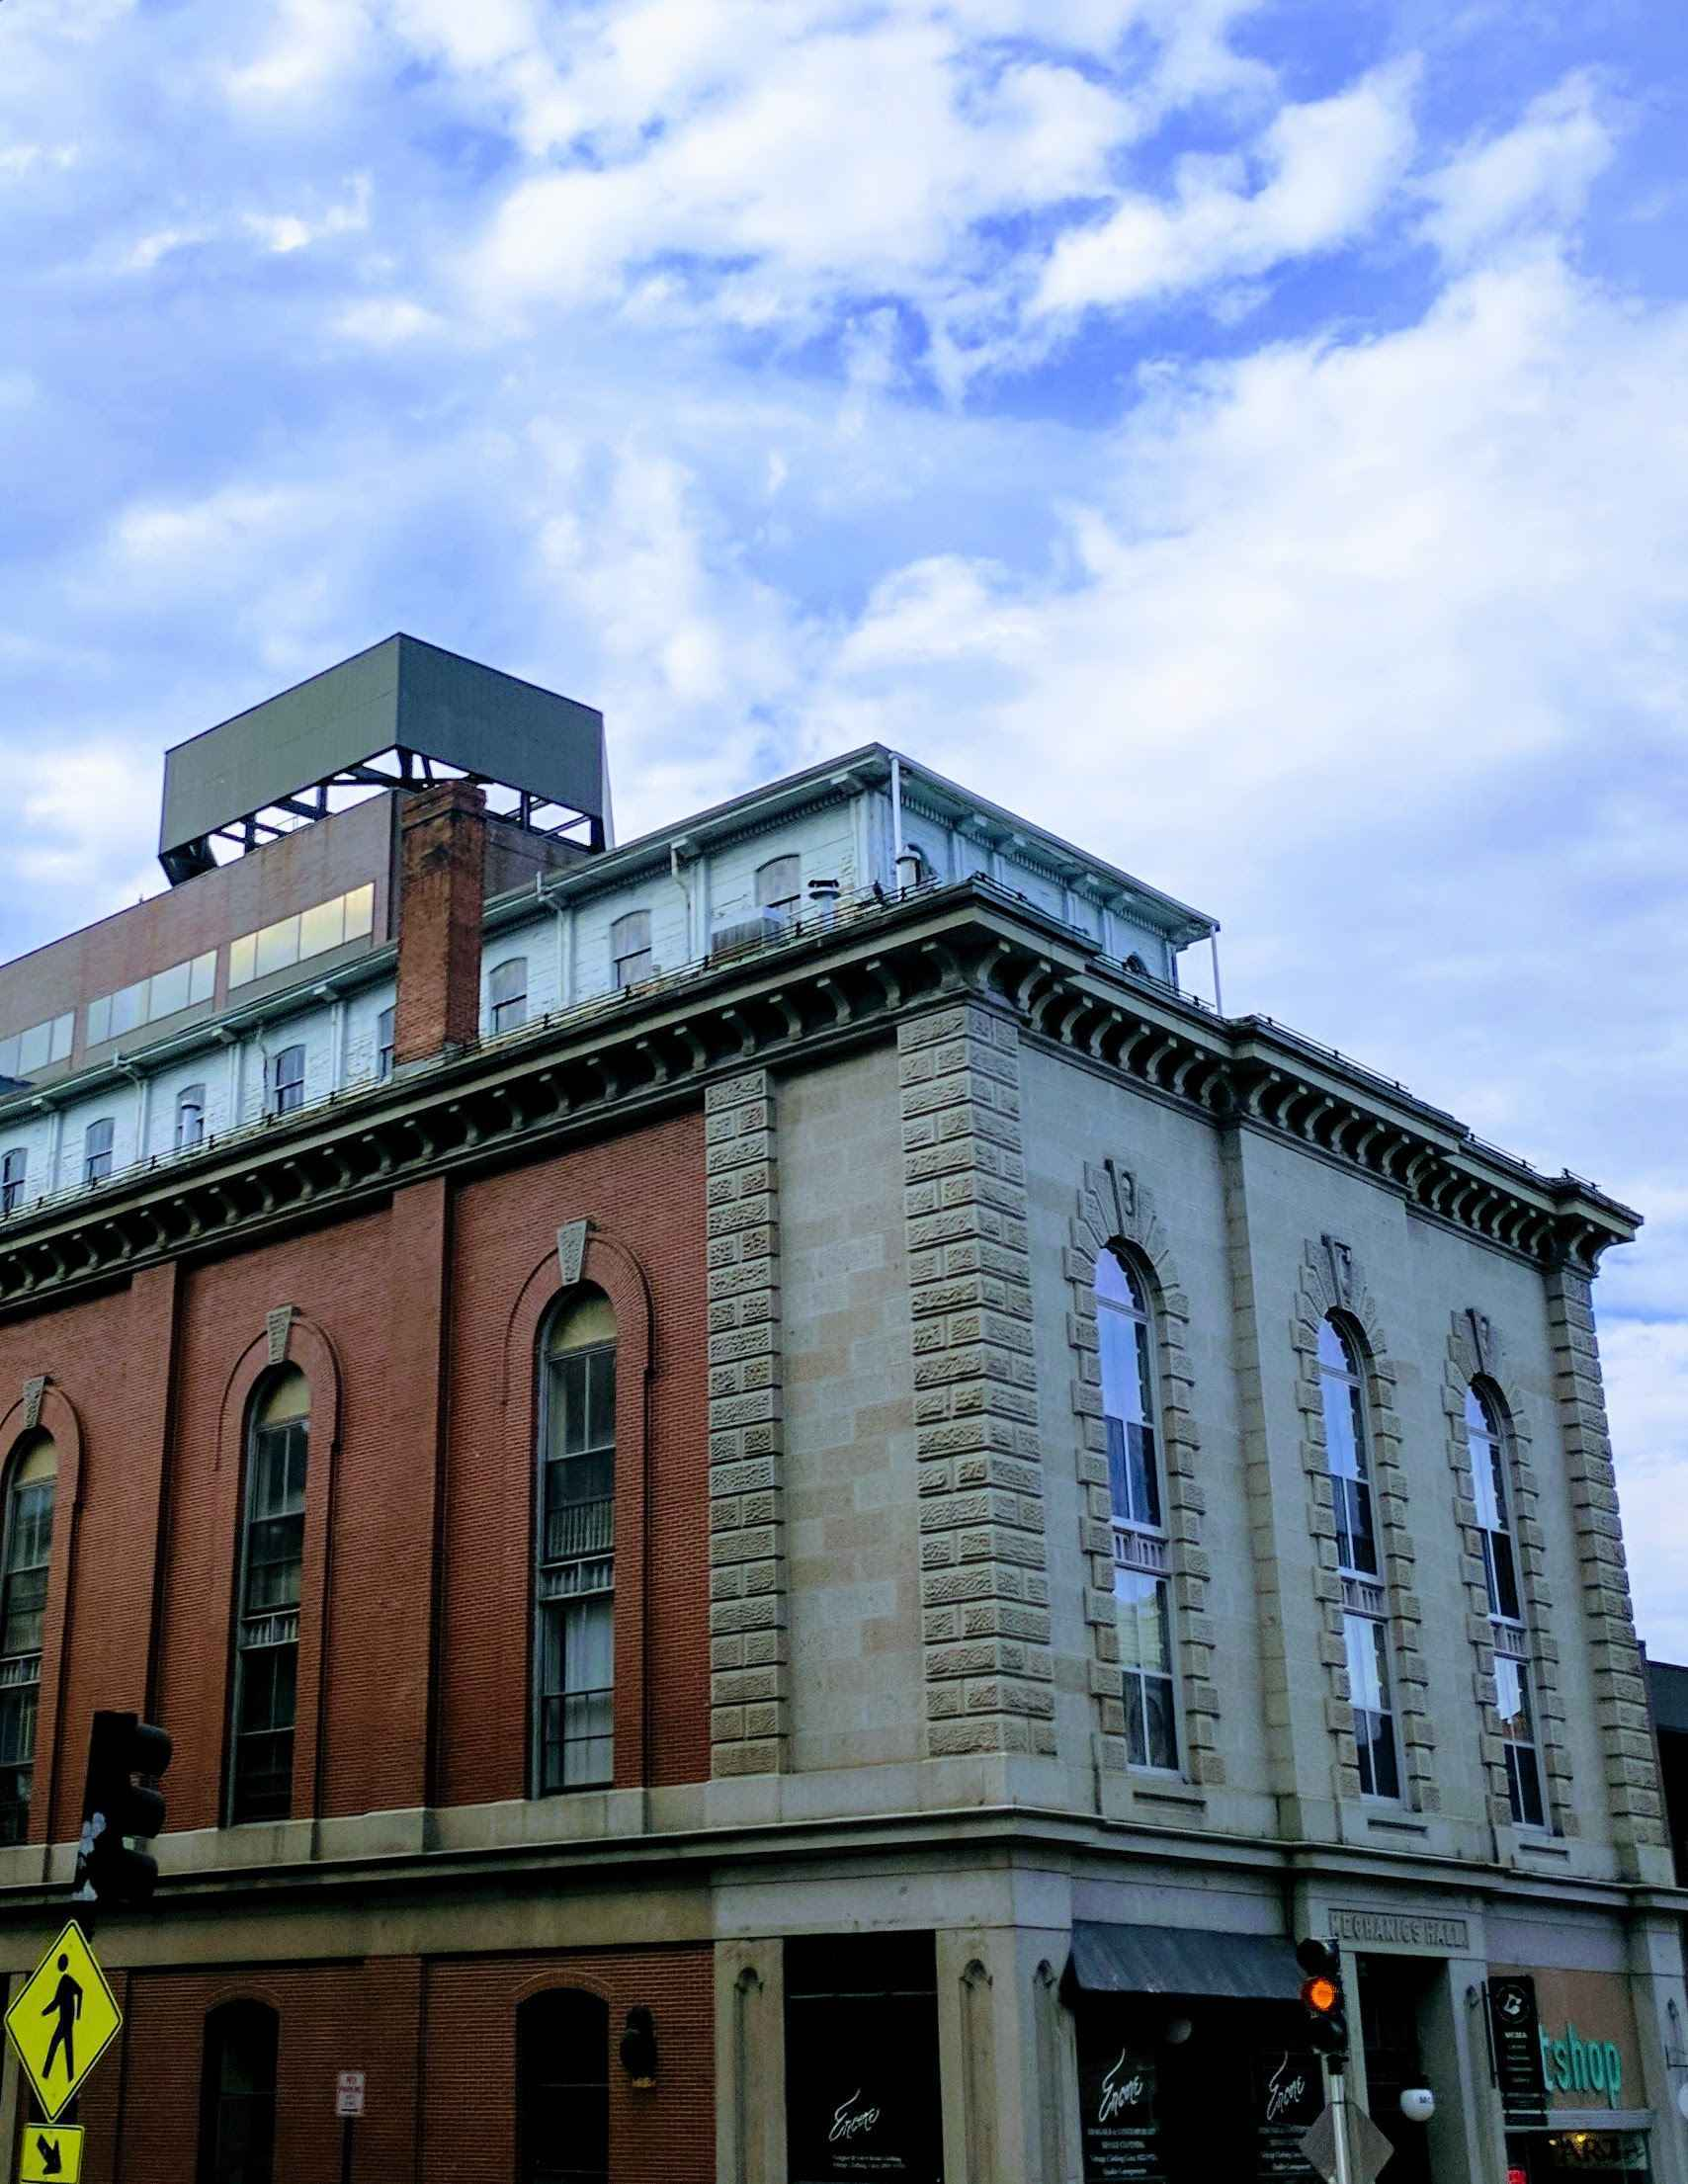 SUPPORT MECHANICS' HALL DURING OUR EXTENDED CLOSURE BY RENEWING OR BECOMING A MEMBER TODAY image